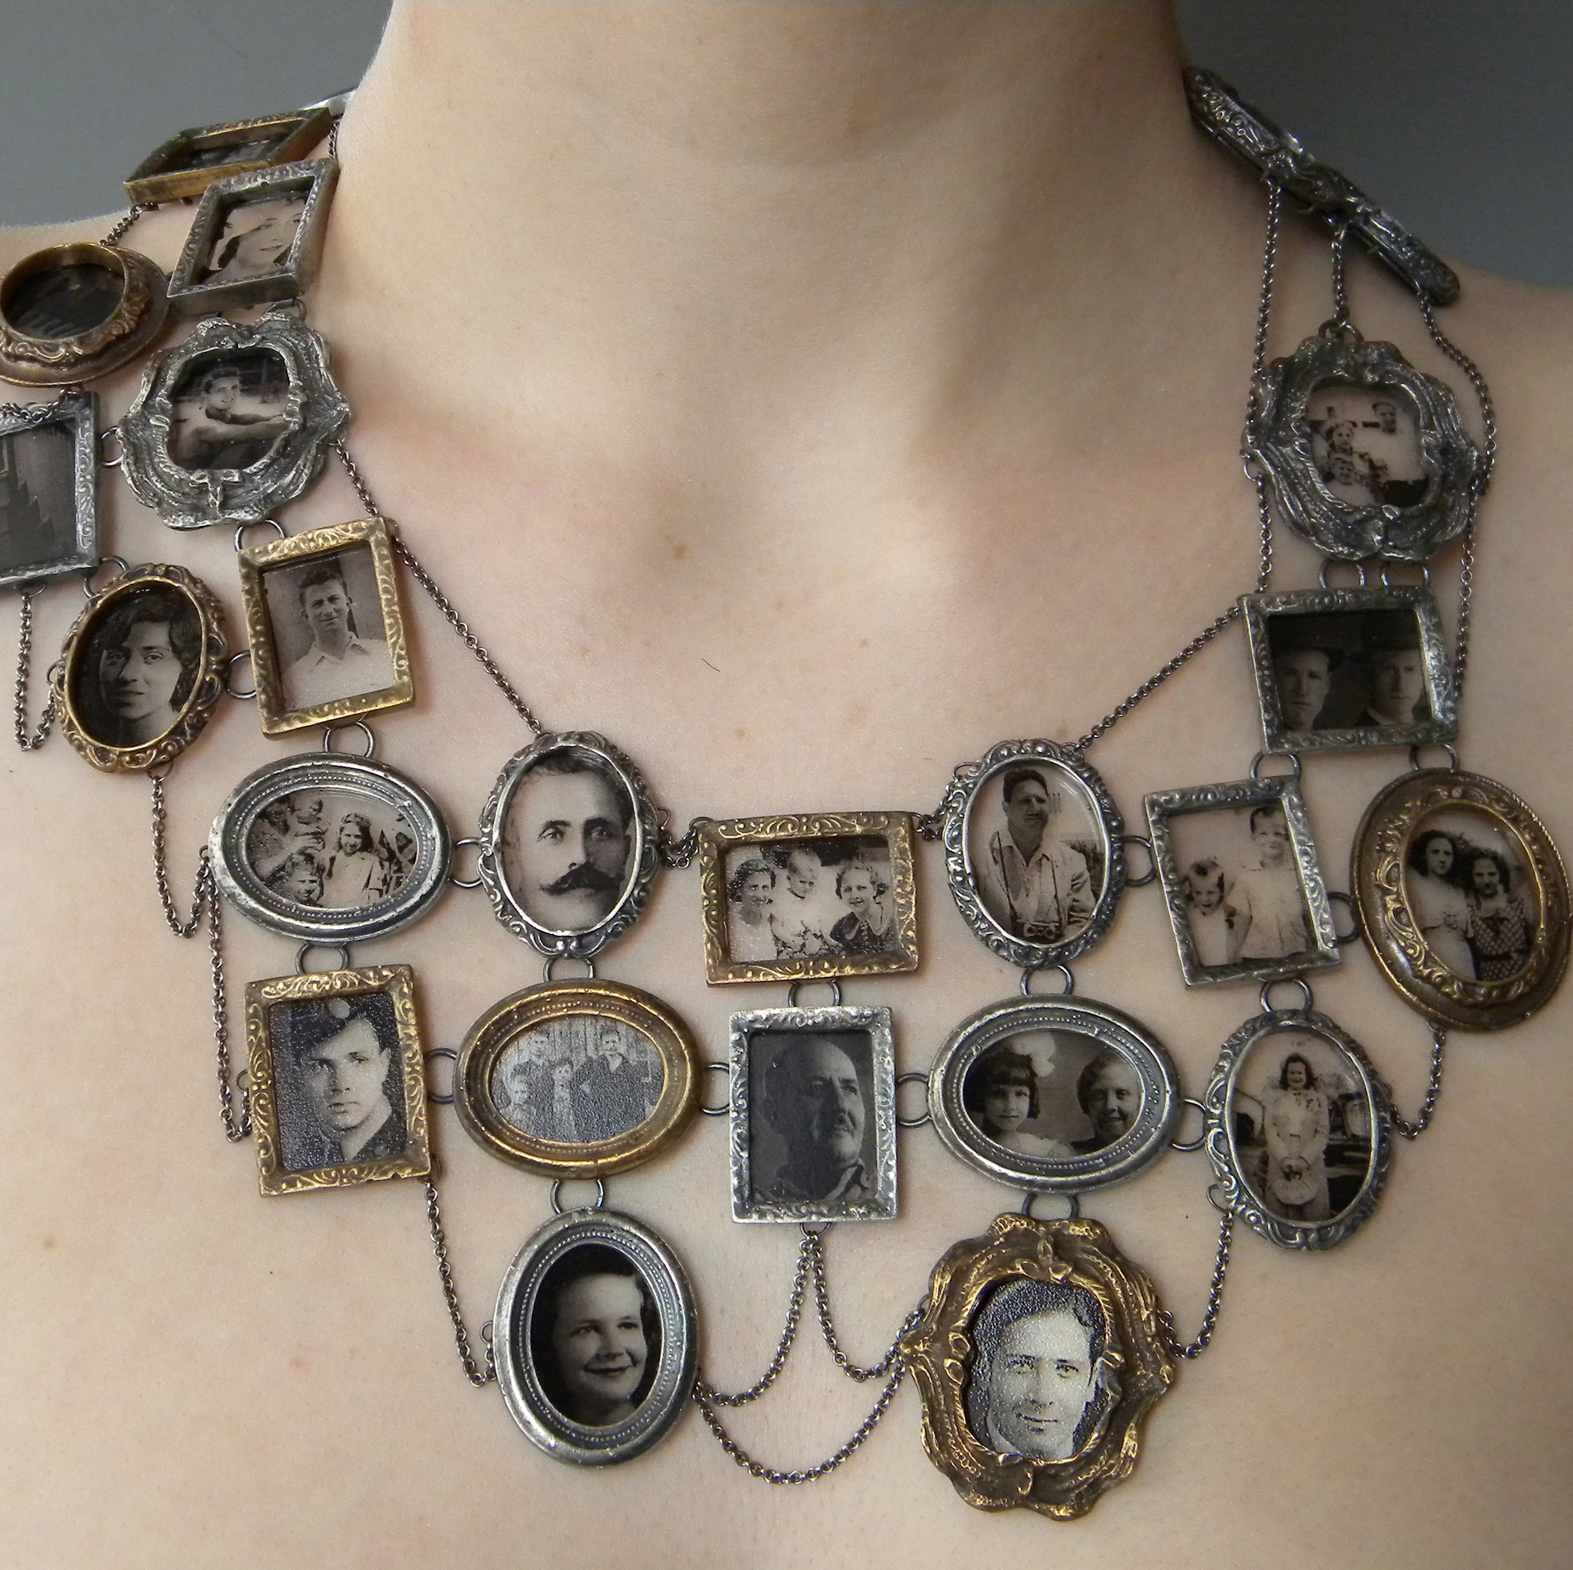 Photo of i am who they were, 2011, necklace by ashley gilreath, created by casting dollho…